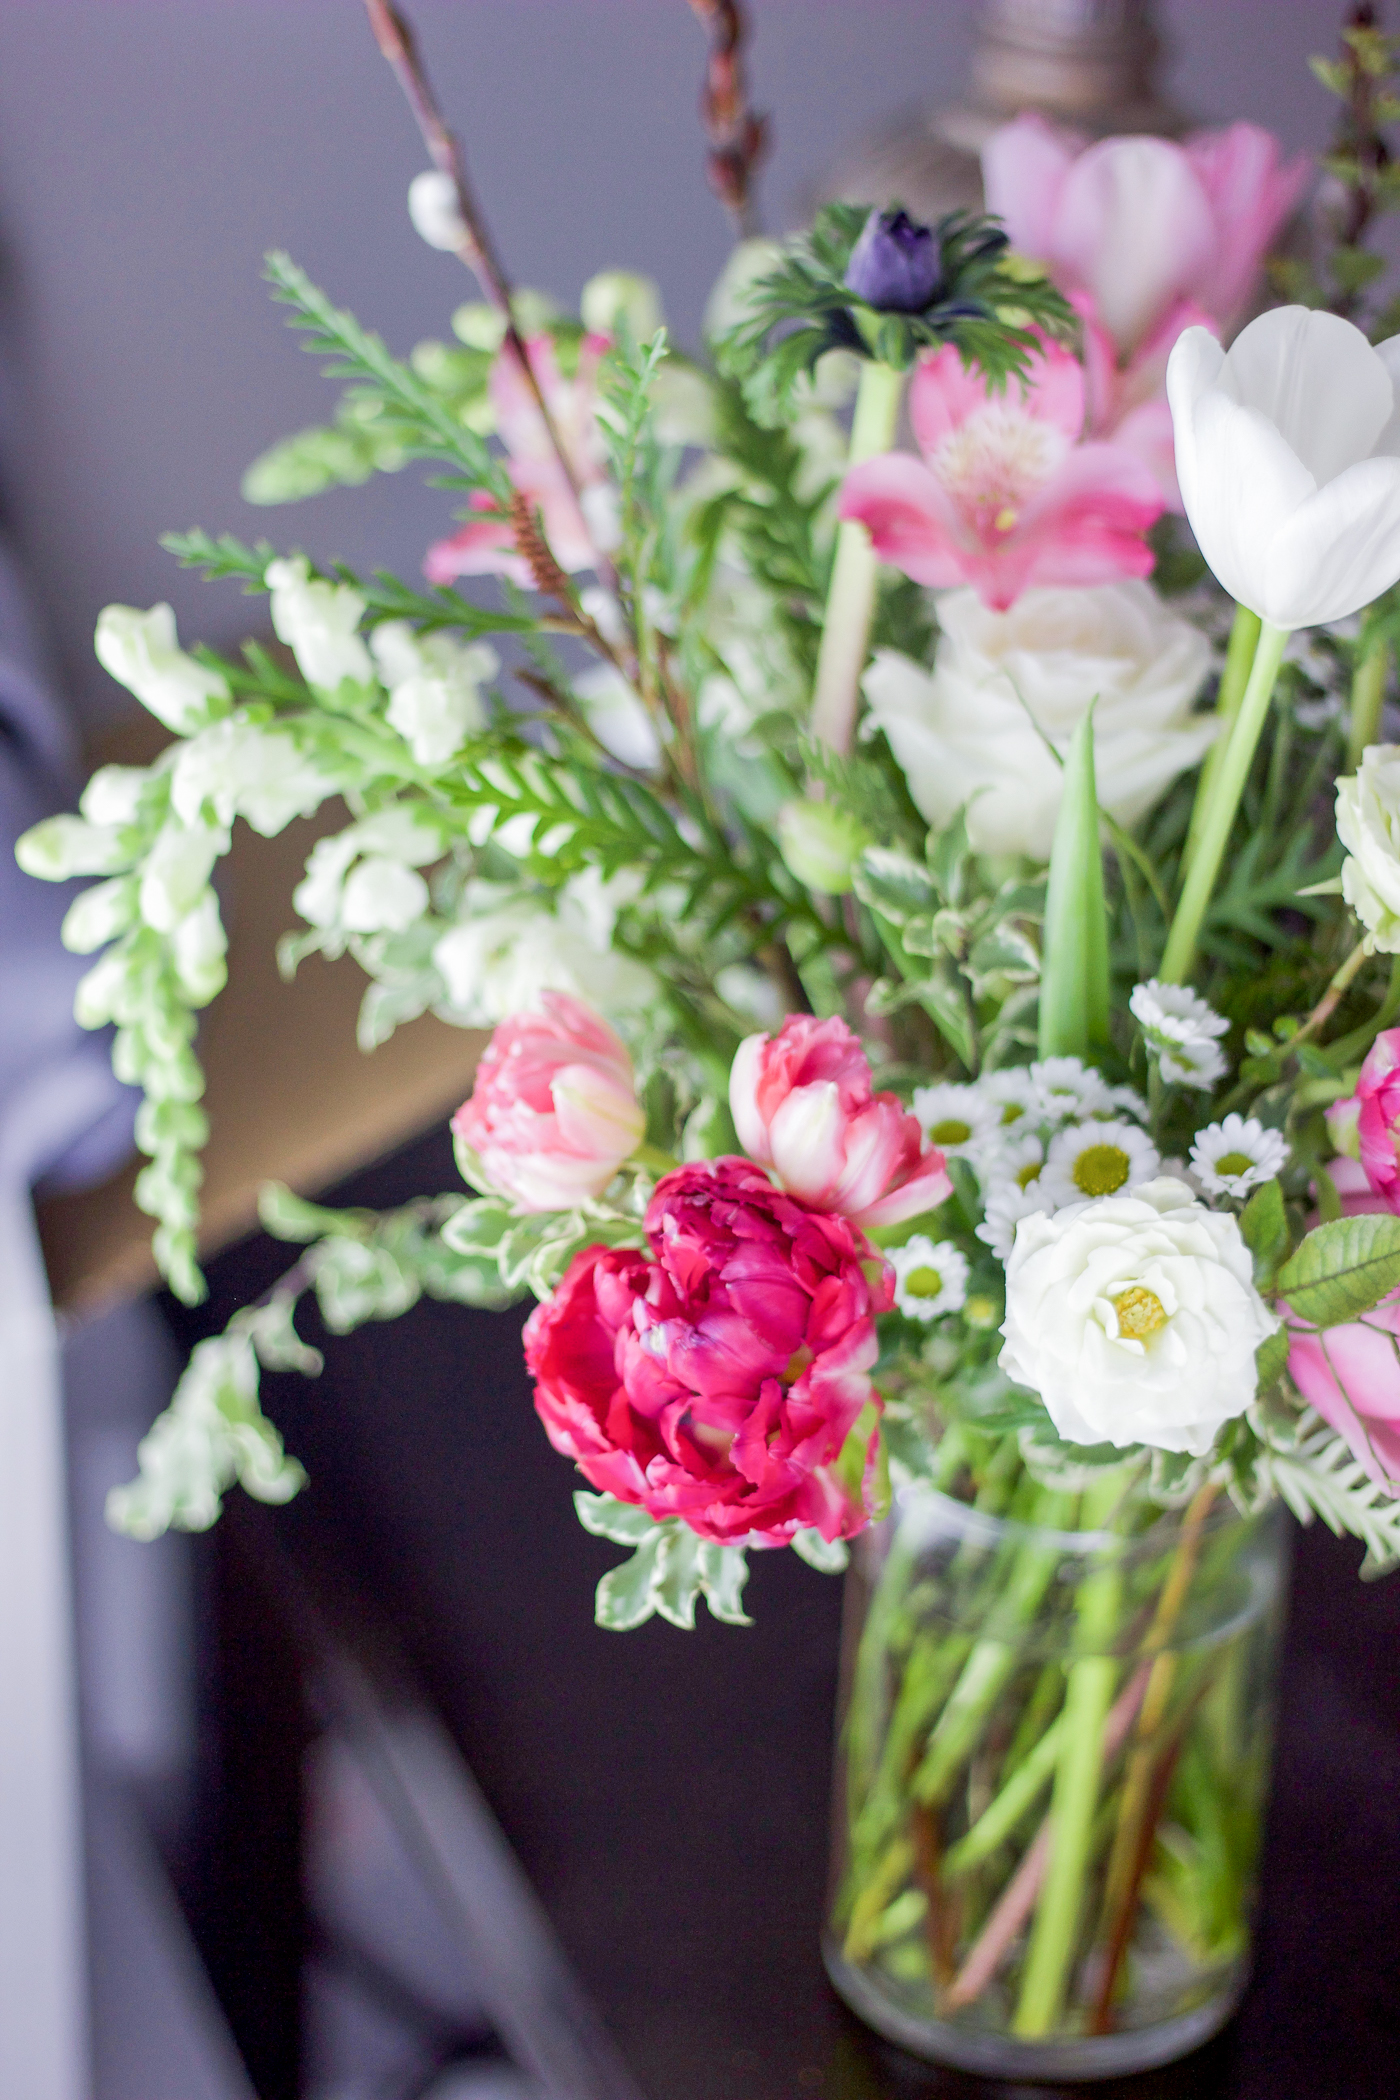 How to DIY your own flower arrangement - sharing some tips and tricks